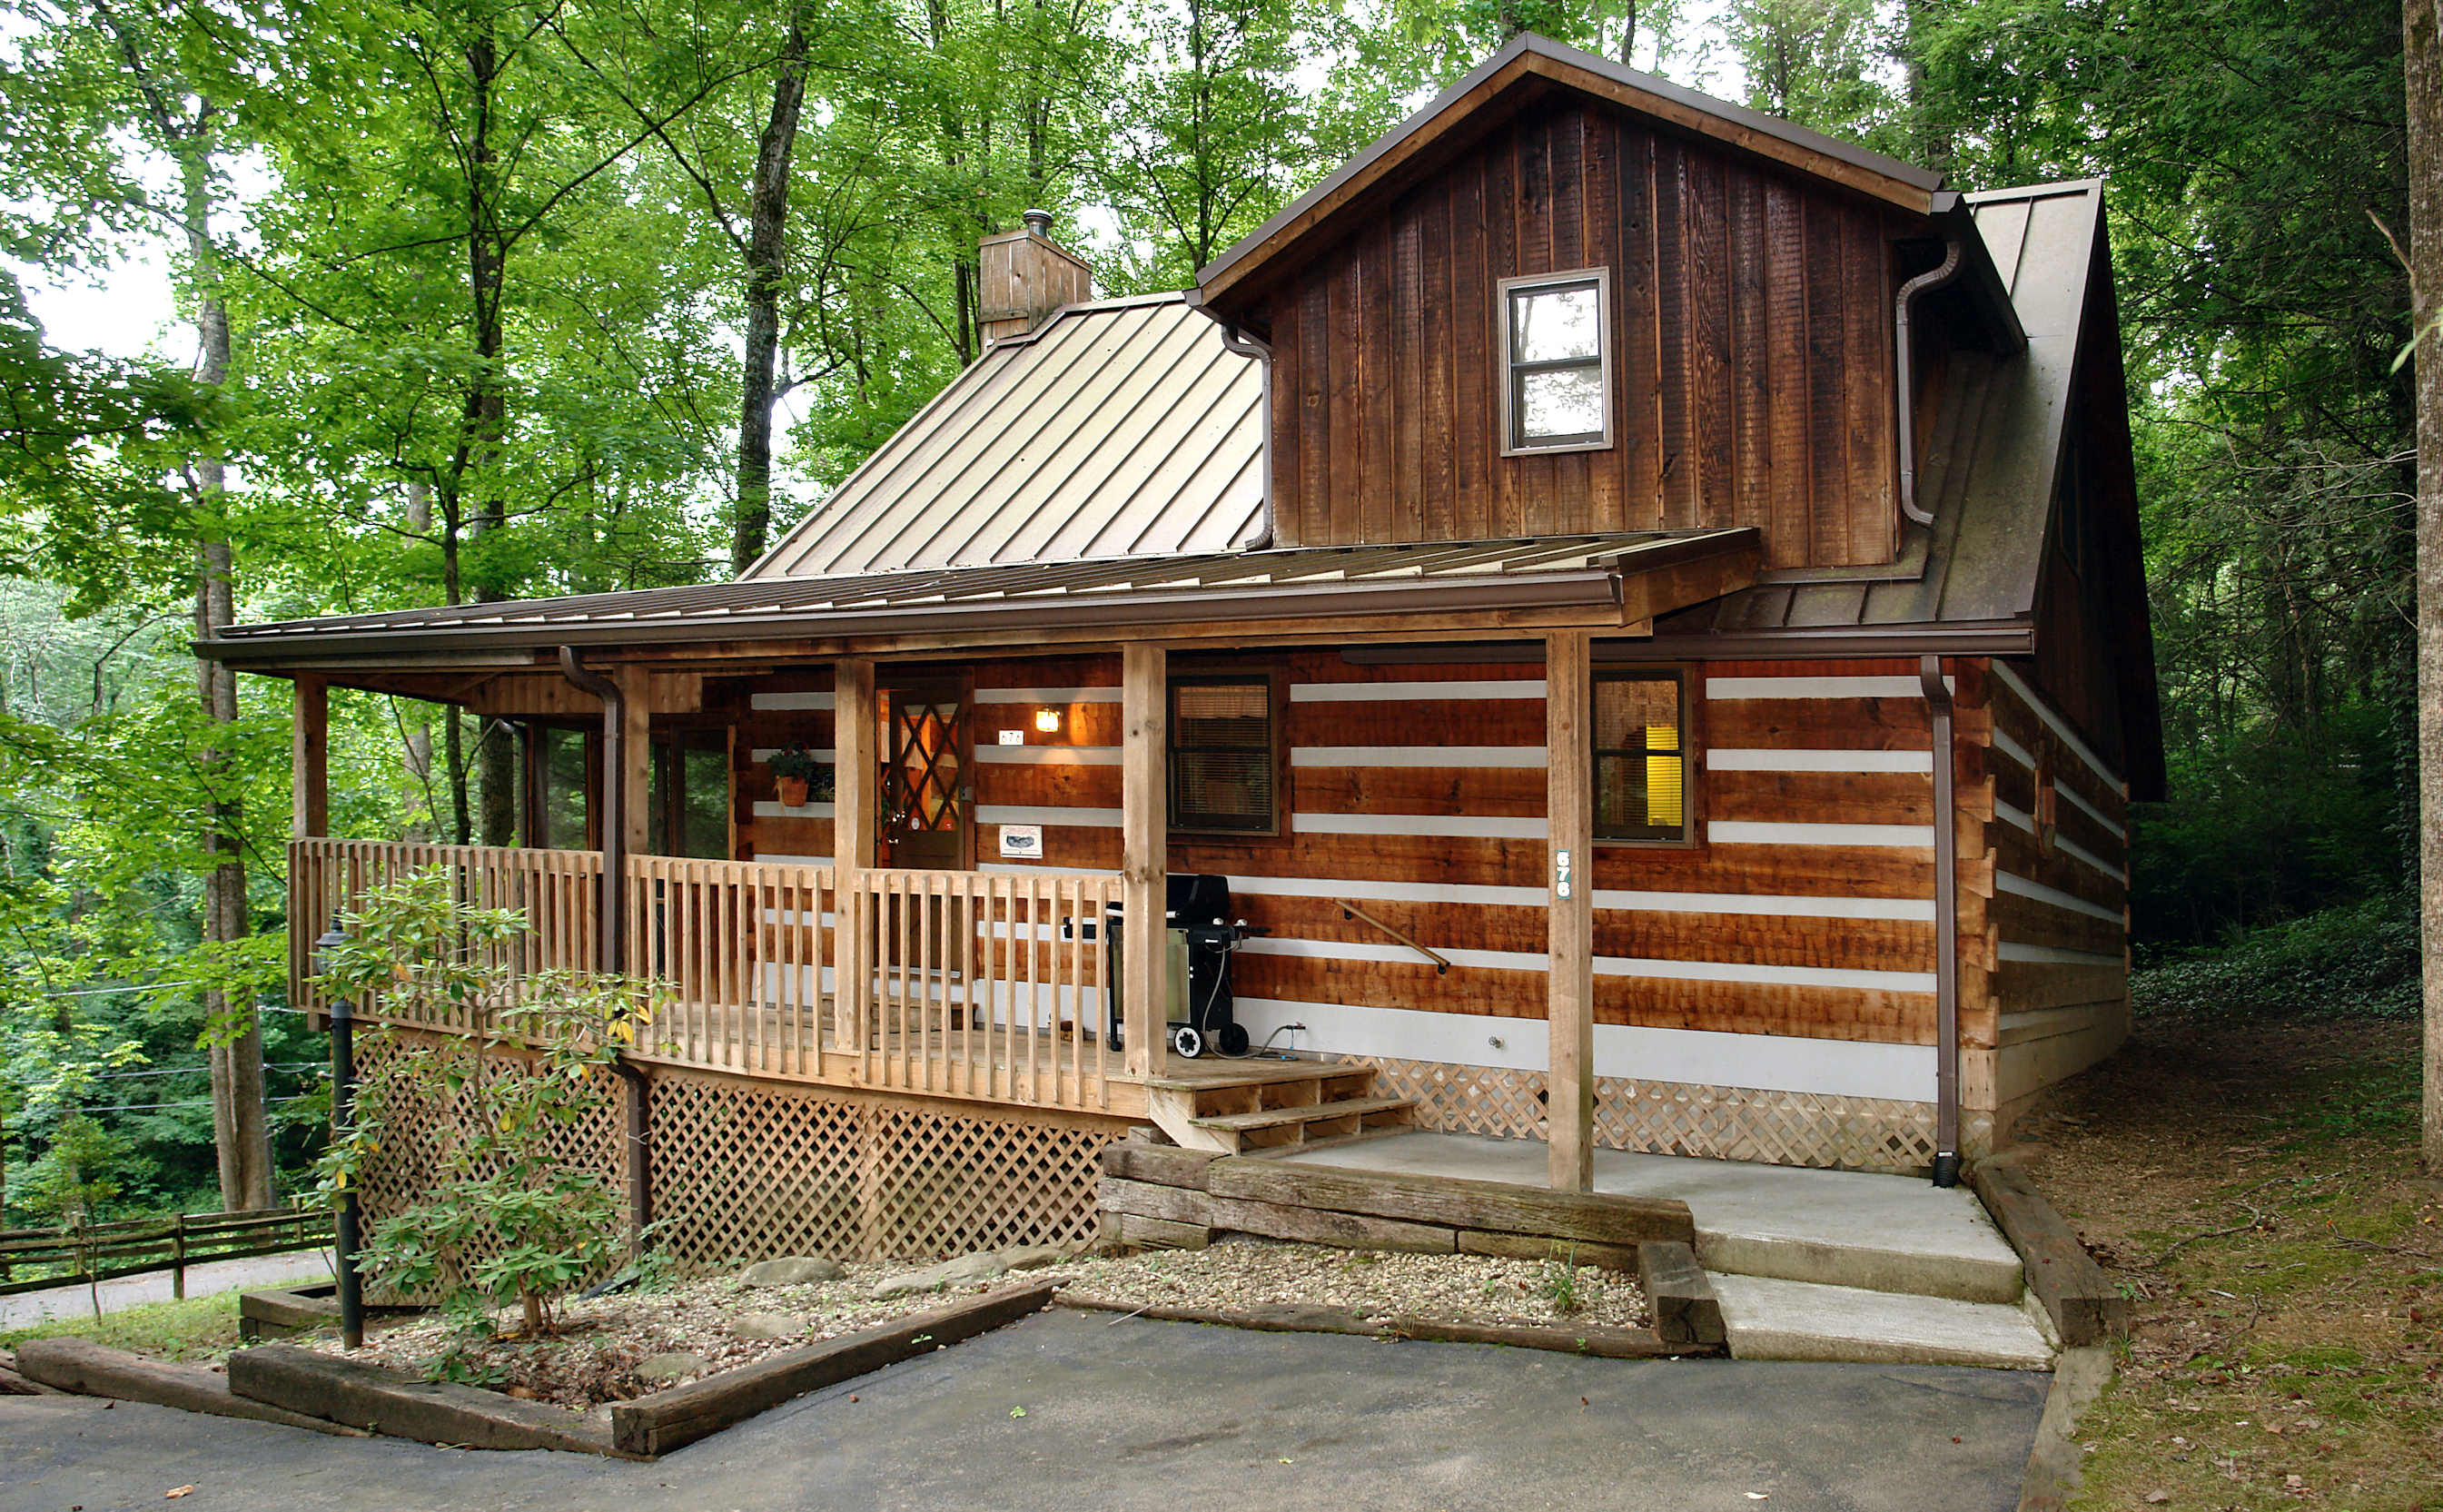 chalet alan gatlinburg cabins in tn s cabin mollys rentals log honeymoon mountain tennessee bedroom